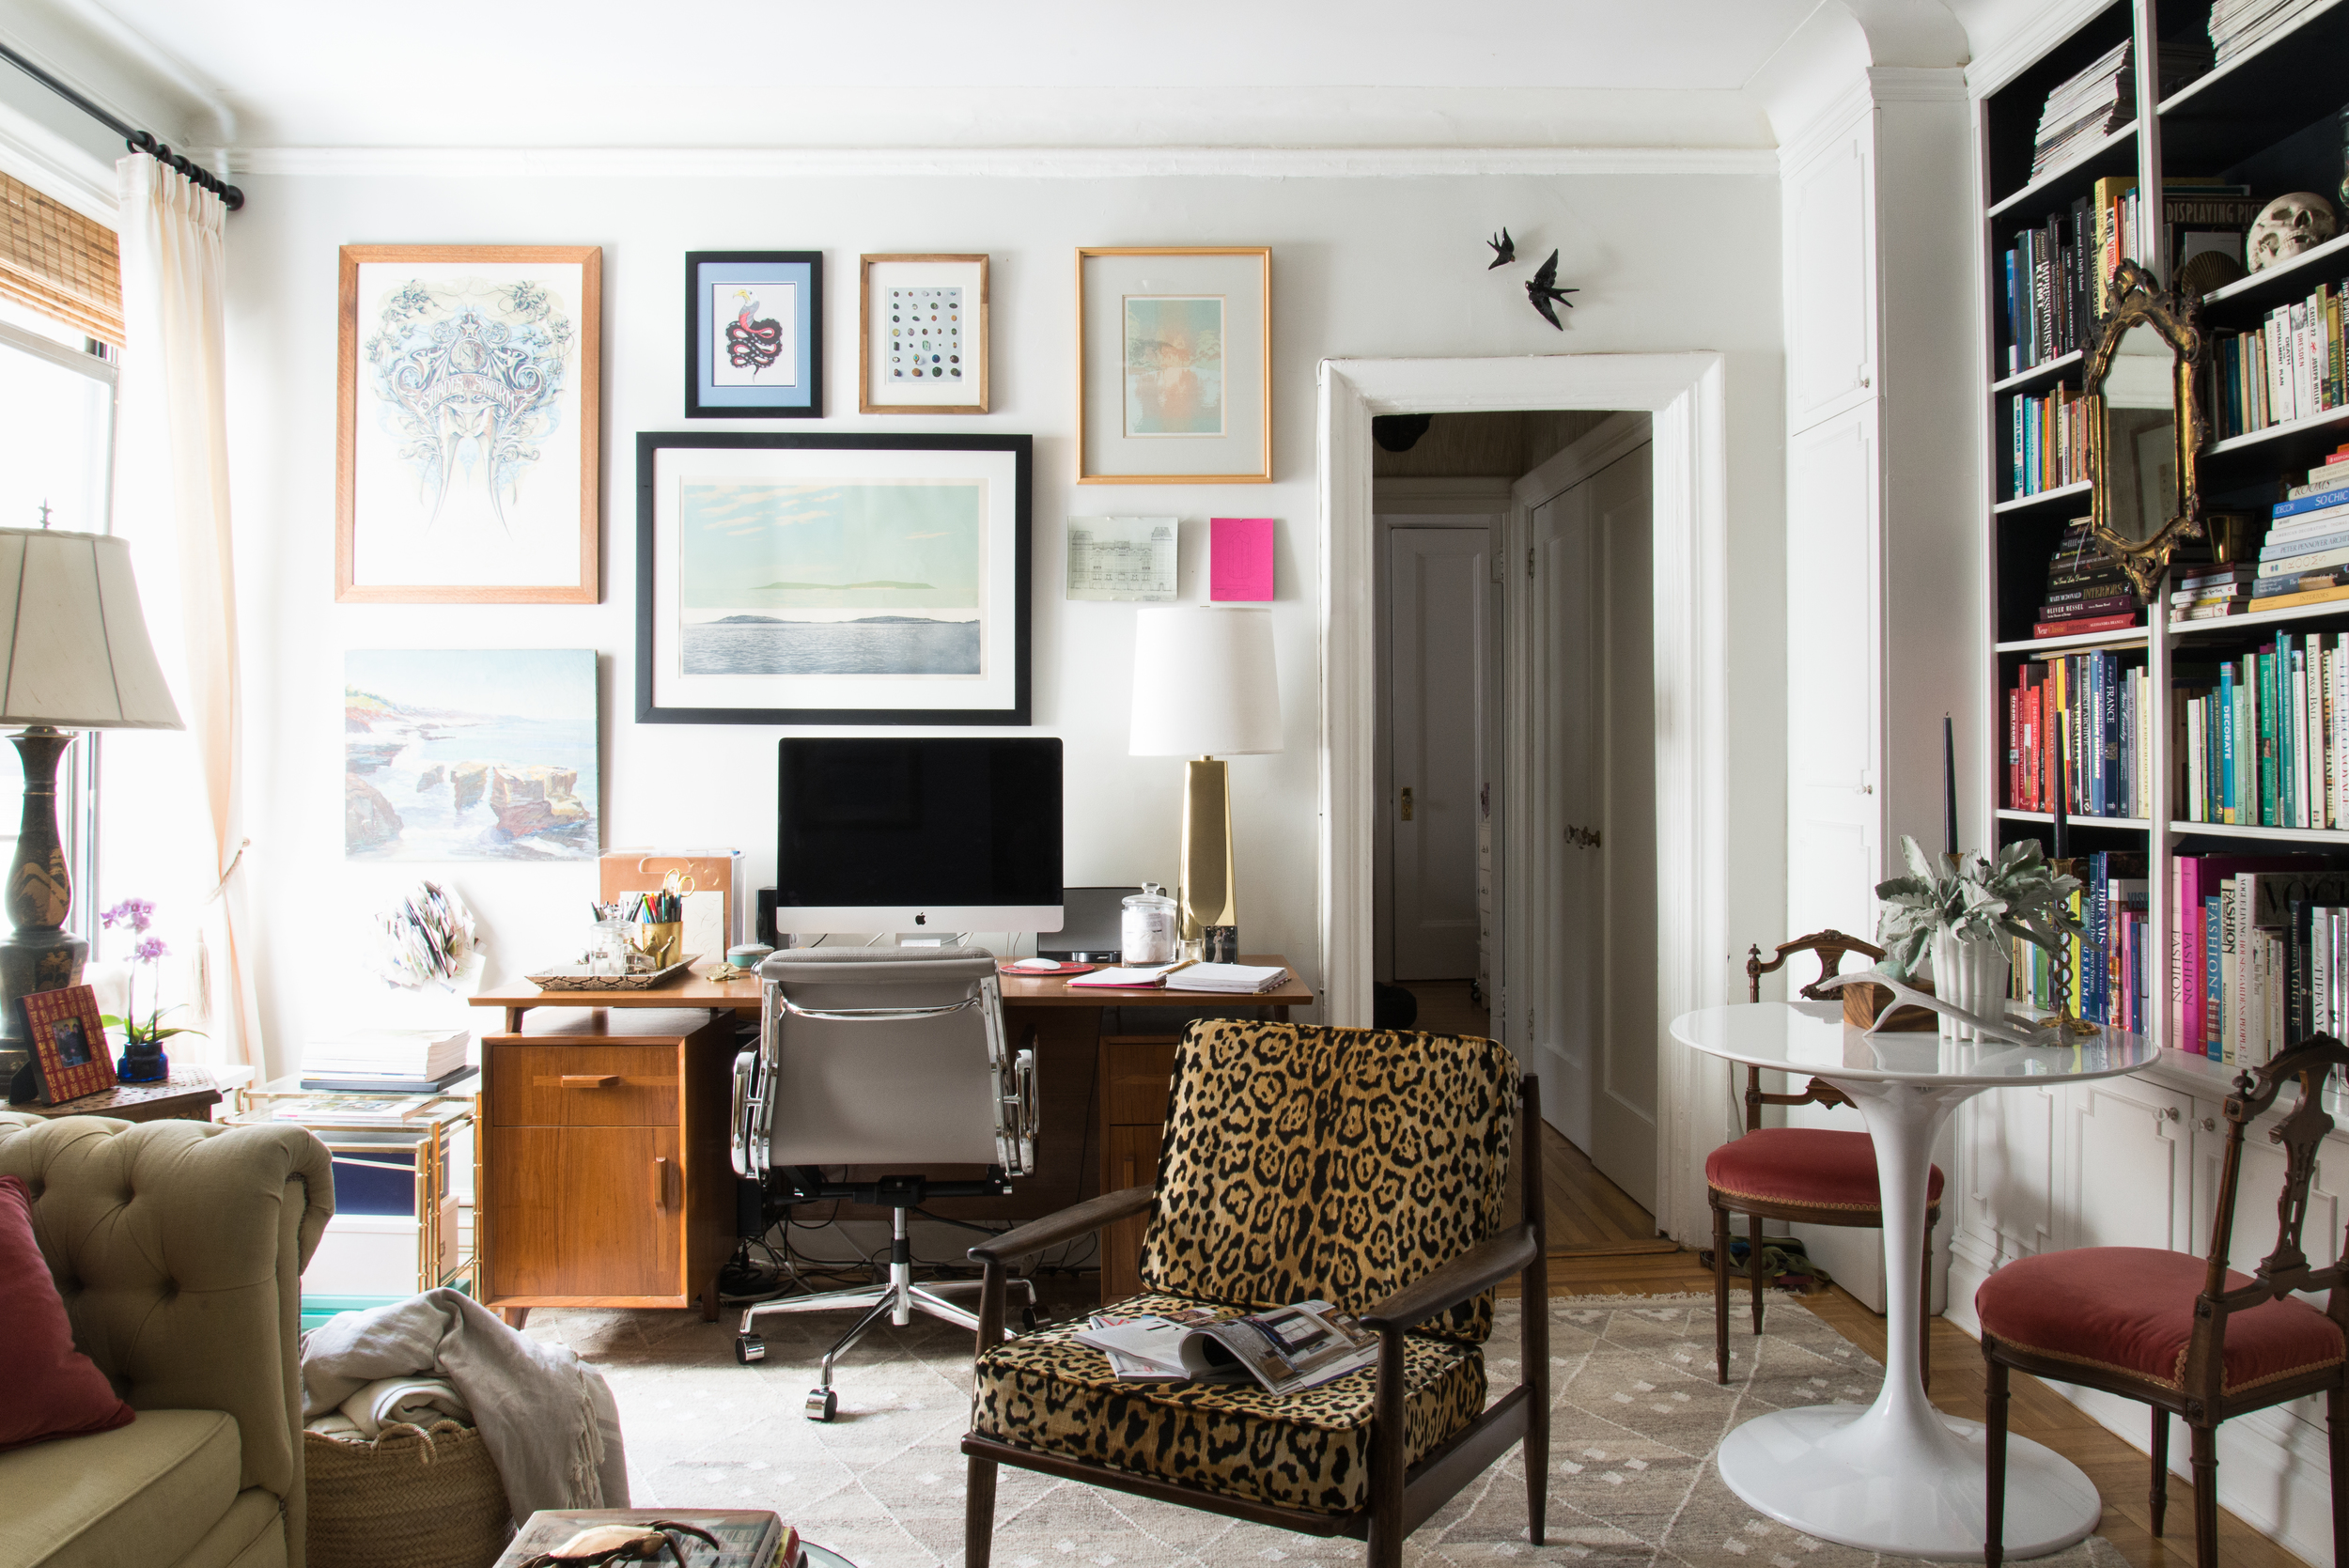 Jack built the desk and built-ins for our Brooklyn apartment | Photograph by Claire Esparros of Homepolish.com